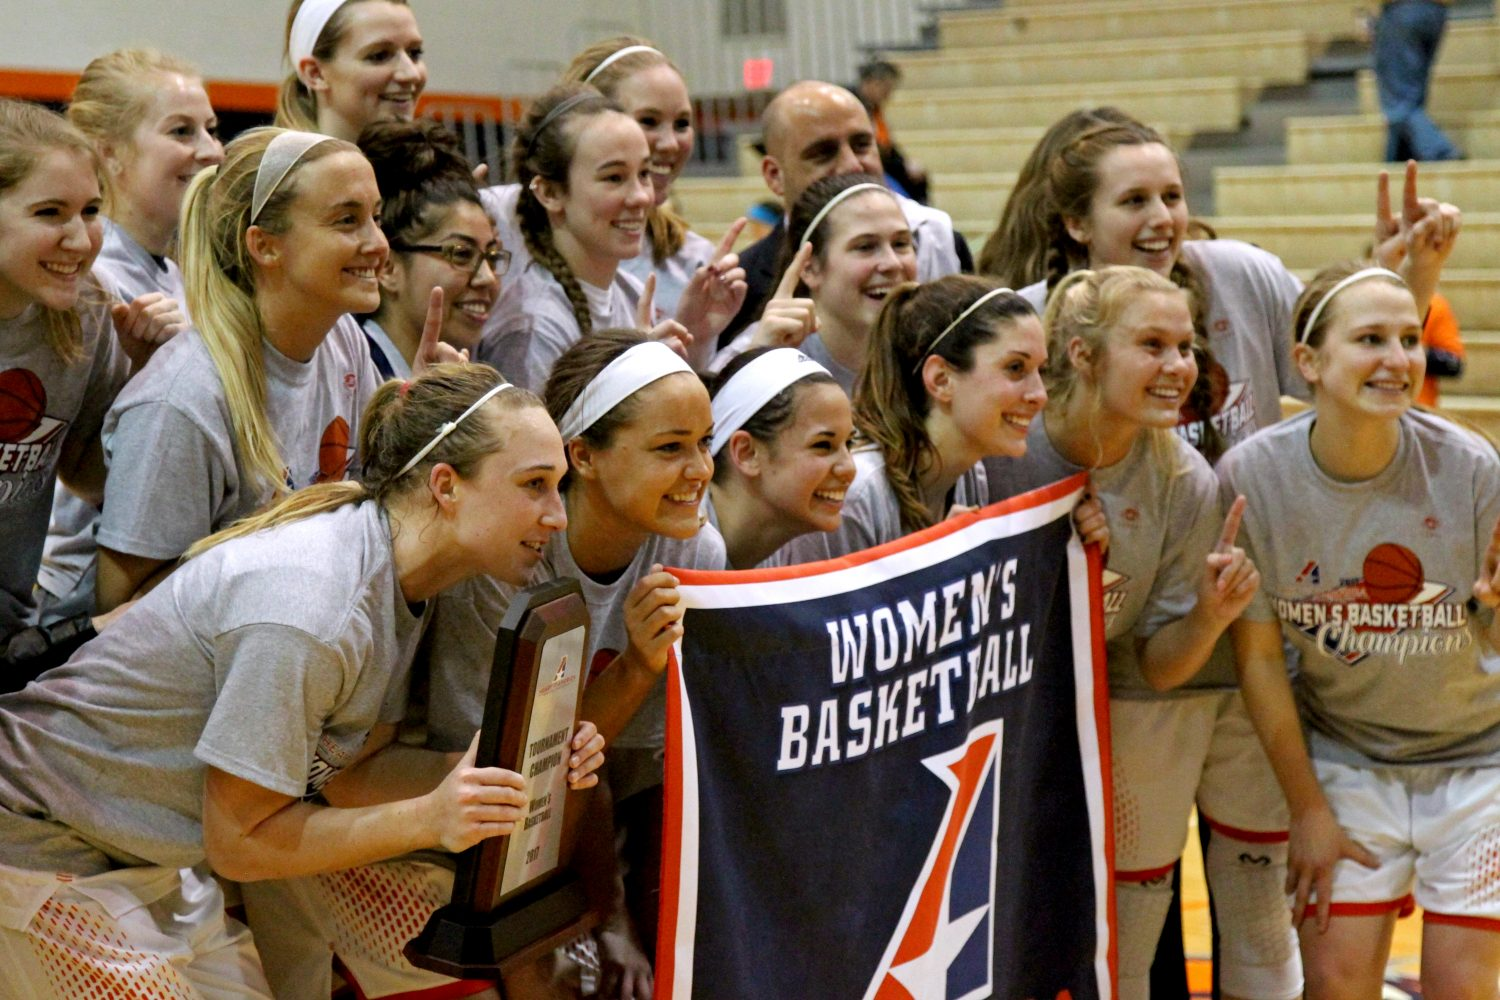 The+Baker+women%27s+basketball+players+pose+for+a+photo+with+their+Heart+championship+banner+after+defeating+Benedictine+64-51.+The+team+won+its+first-ever+Heart+Conference+Tournament+title+along+with+the+regular-season+championship.+Photo+by+Chad+Phillips.